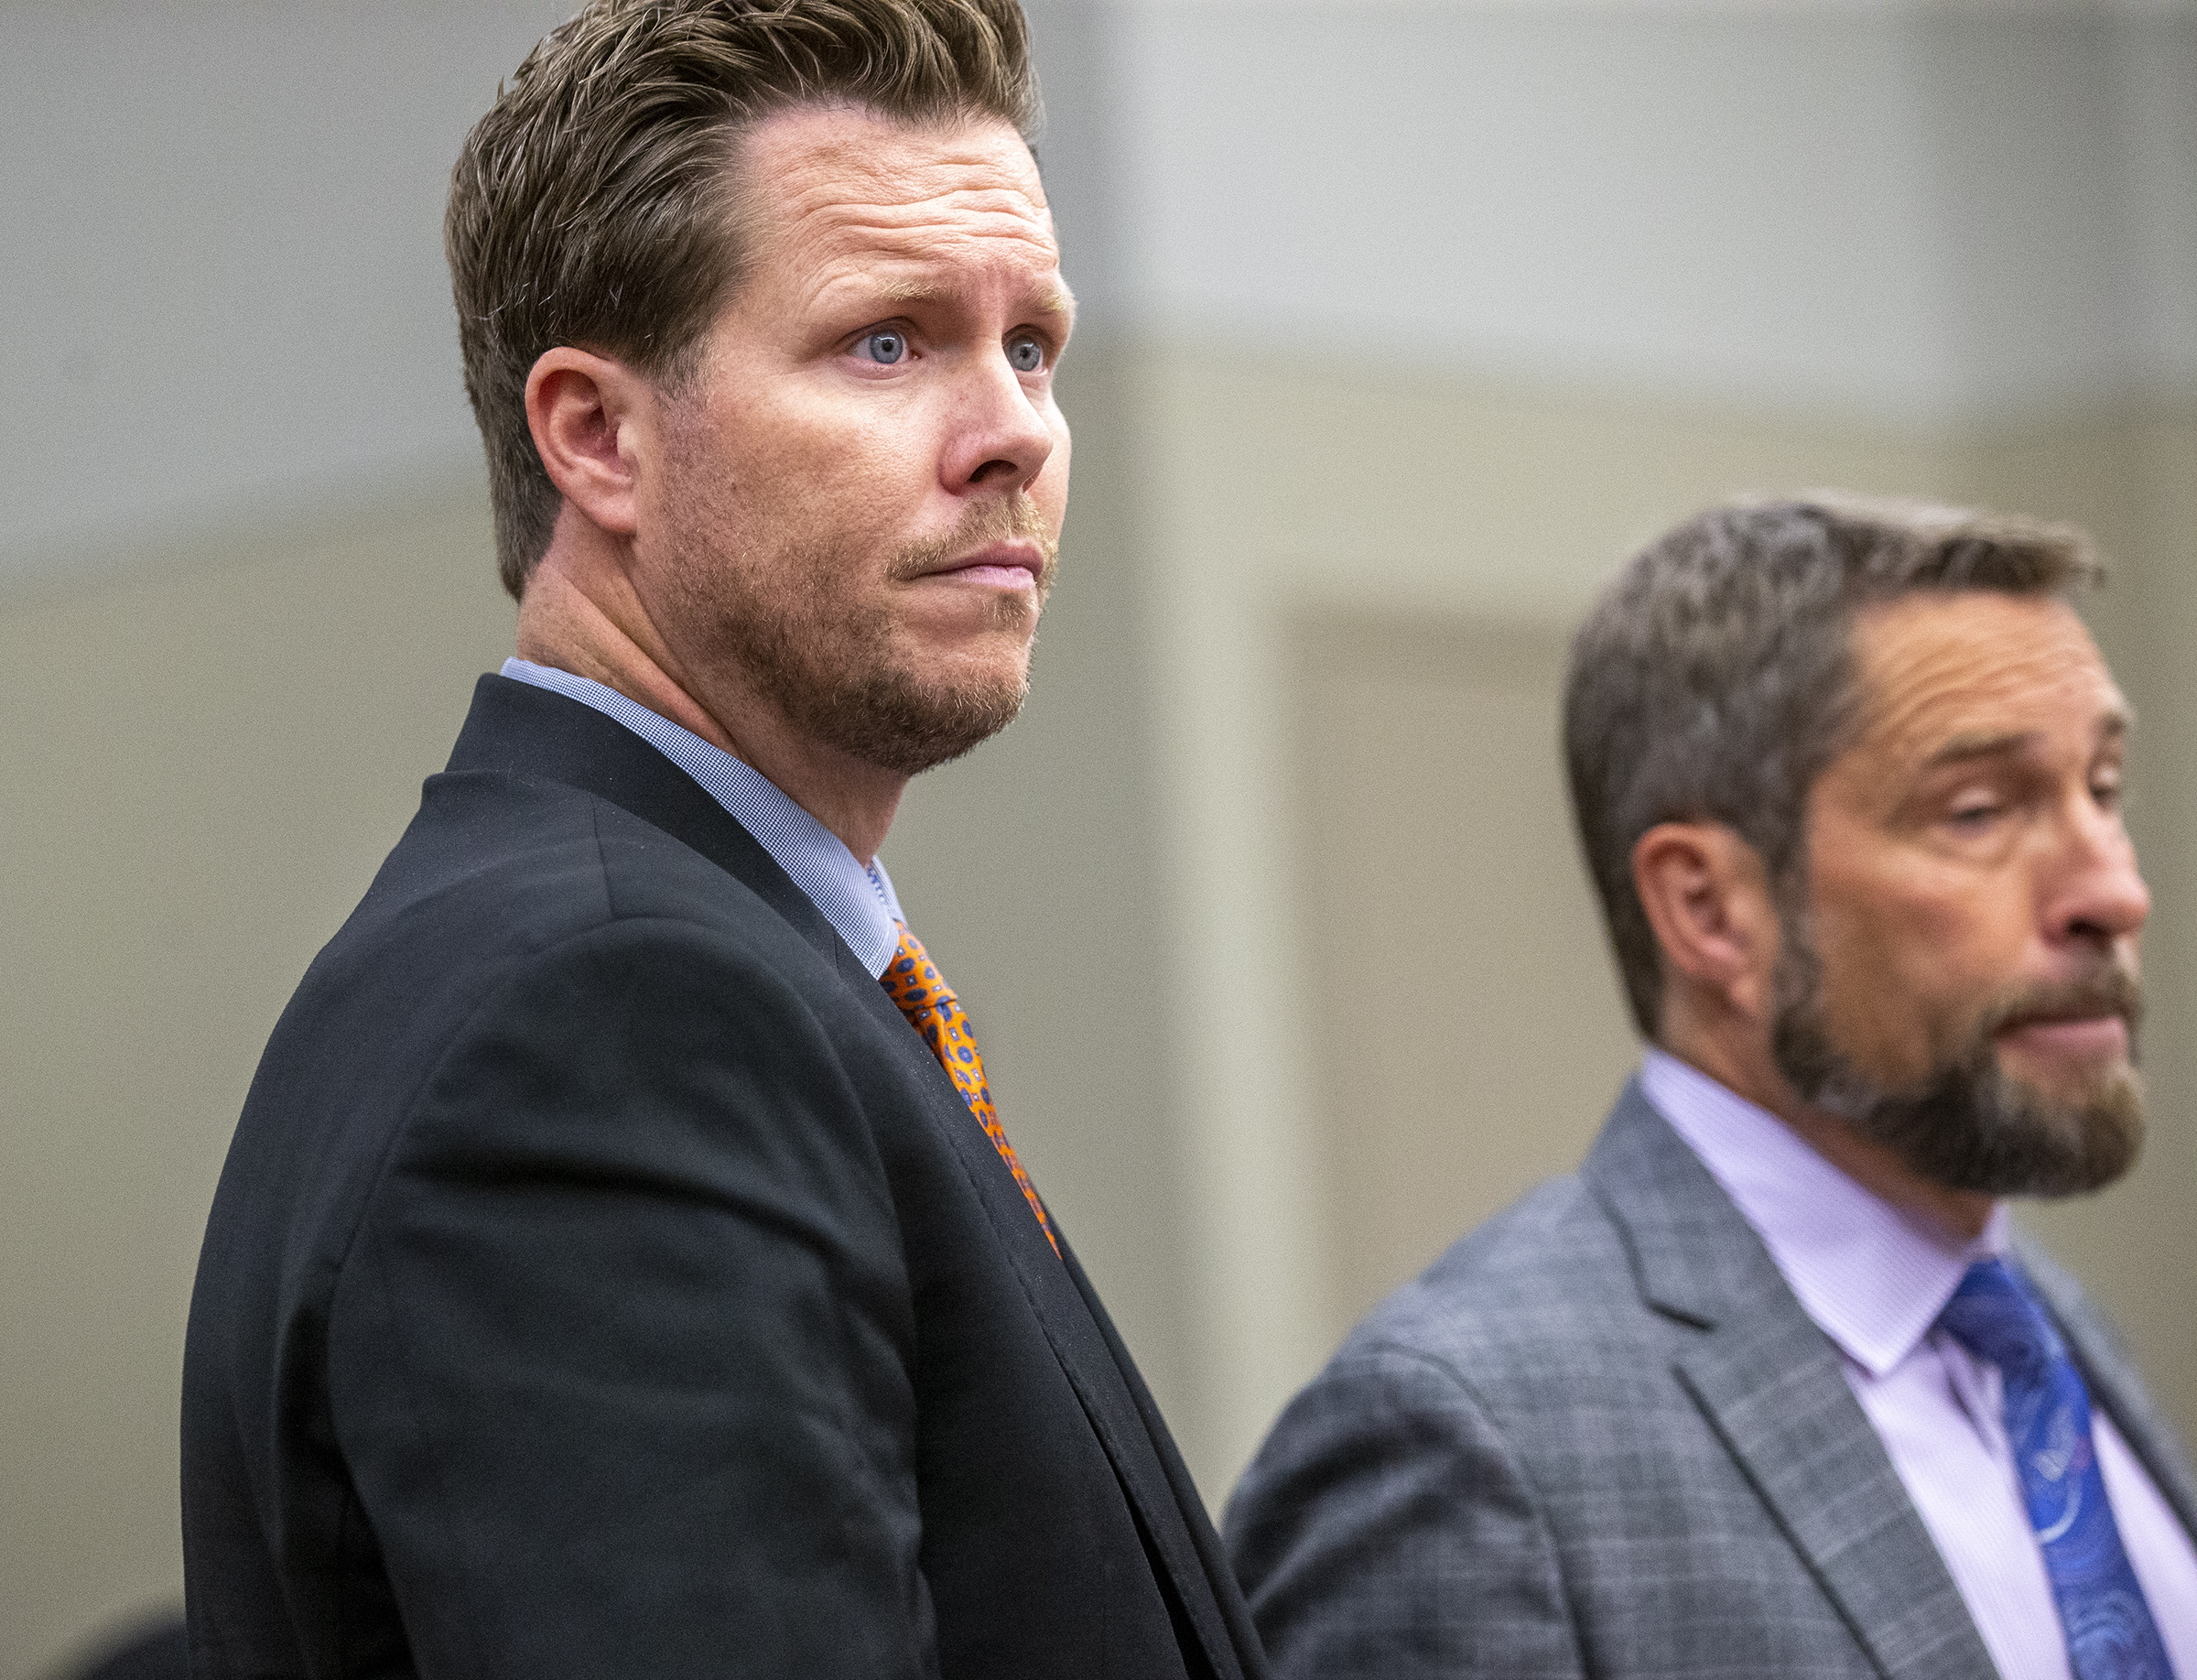 Paul Petersen, left, makes his initial appearancein a 3rd District courtroom at the Matheson Courthouse in Salt Lake City with his attorney, Scott Williams, on Friday, Nov. 15, 2019. Williams, the Maricopa County, Arizona, assessor faces 11 felonies including human smuggling, sale of a child, communications fraud and engaging in a pattern of unlawful activity.